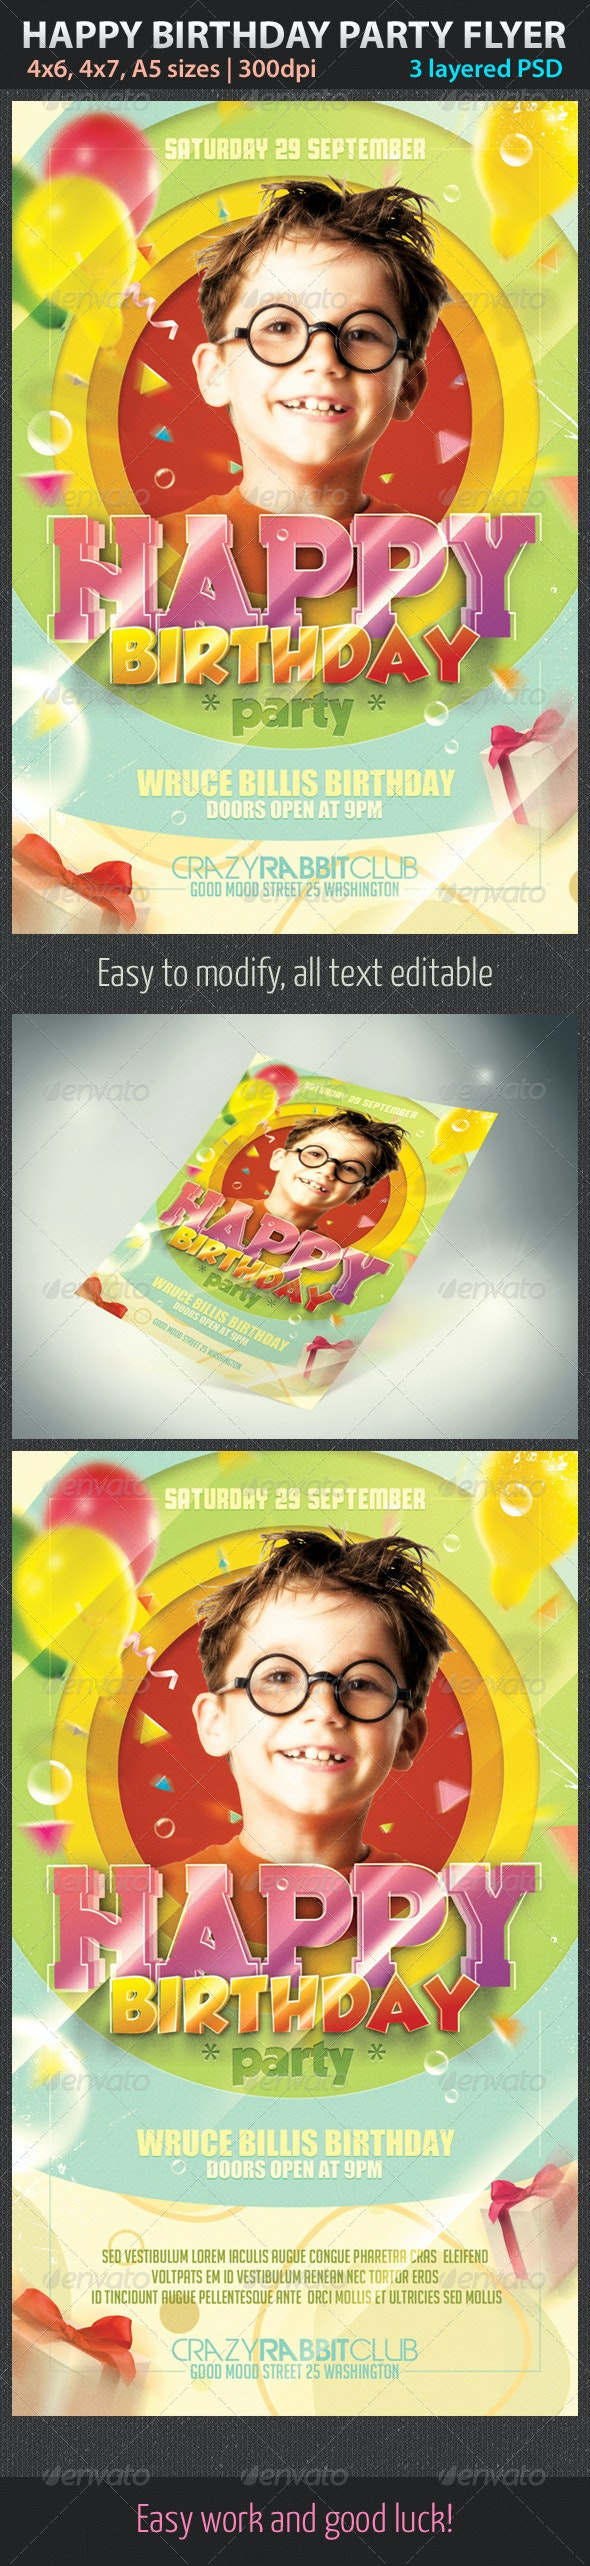 Happy Birthday Party Flyer - Holidays Events